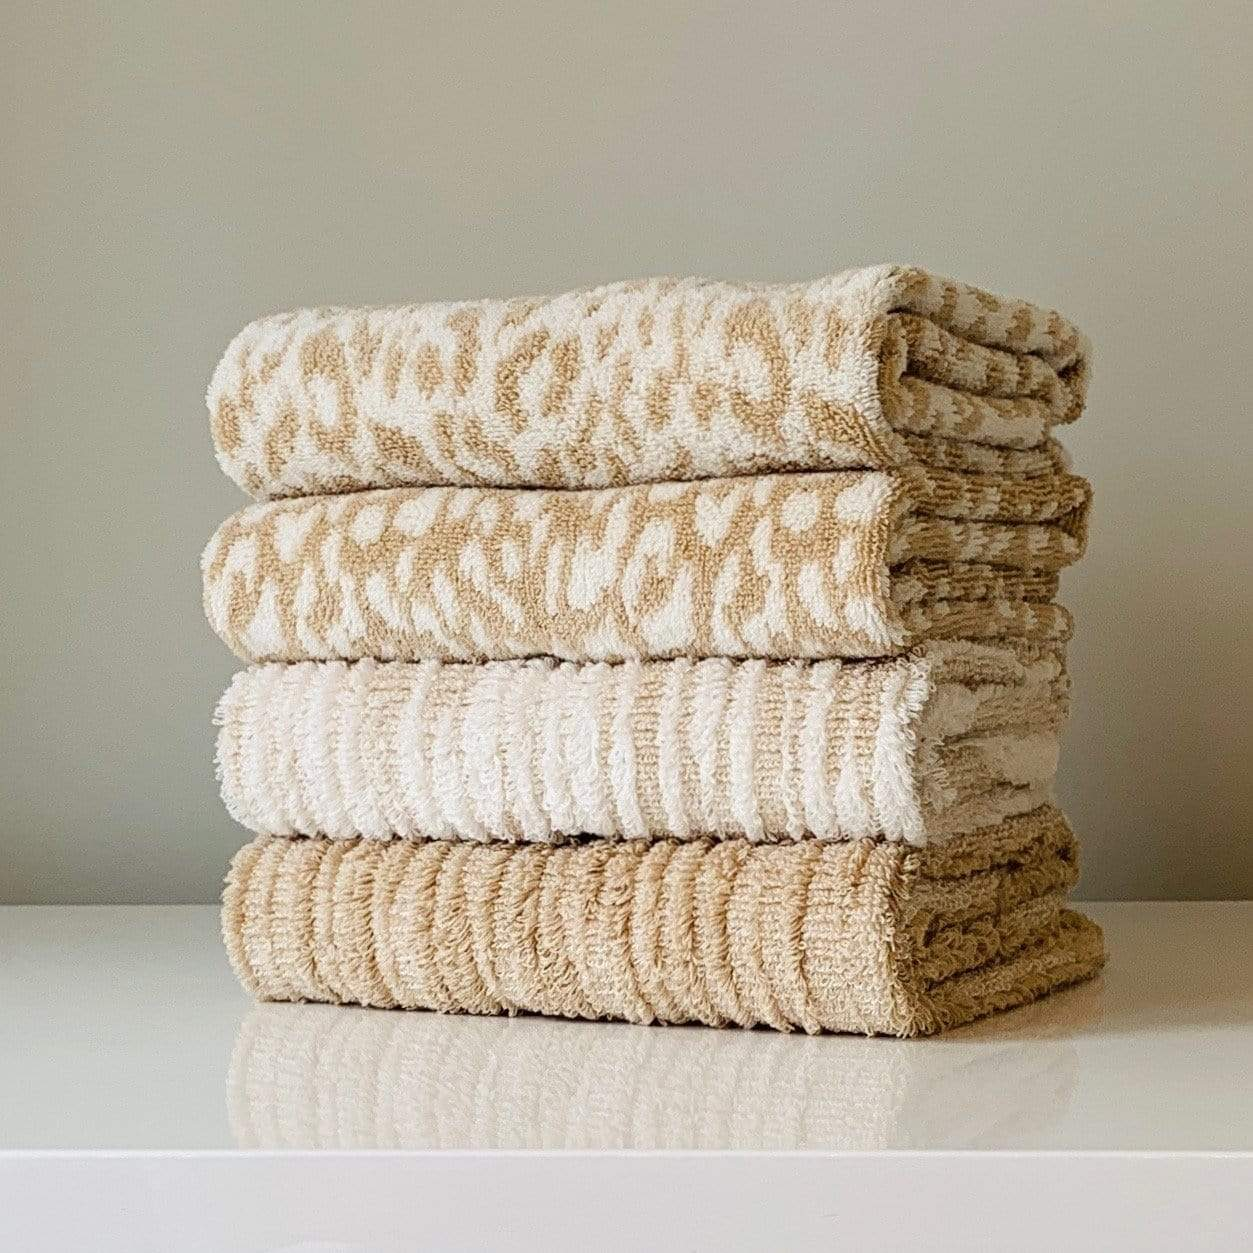 Linen Cheetah Zimba Towel